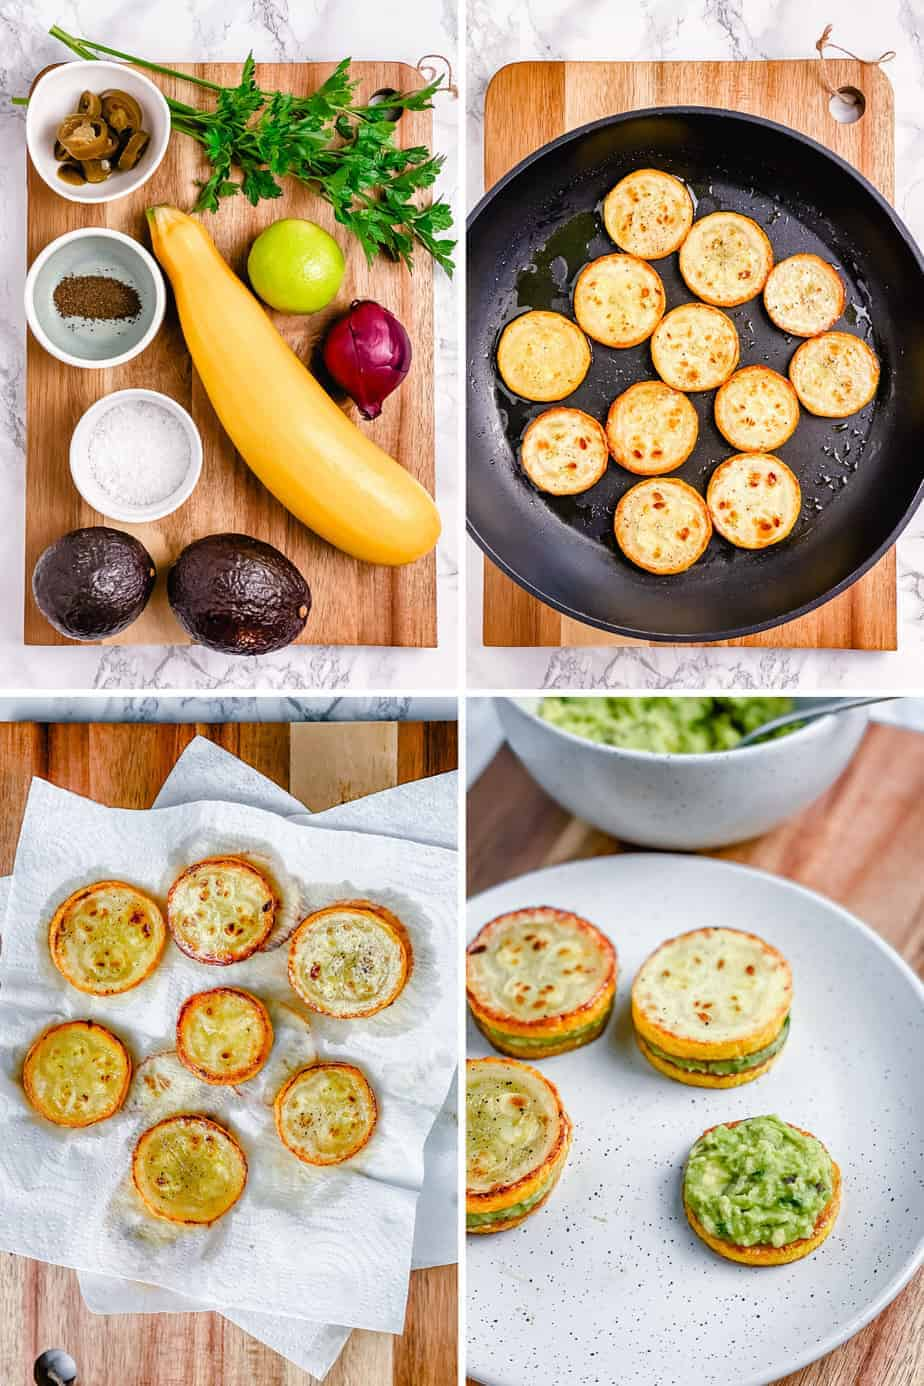 Have you tried zucchini sliders? They are easy to make, 100% vegan, come in mini bite-size pieces, and loaded with only the good and healthy stuff - zucchinis and my favorite guacamole recipe!  #minizucchinisliders #zucchinisldiersrecipe #veganzucchinisliders #squashsliders #zucchiniburgers #minizucchiniburger #veganzucchiniburger #zucchini #goldensquash #yellowzucchini #squashsliders #squashburger - The Yummy Bowl